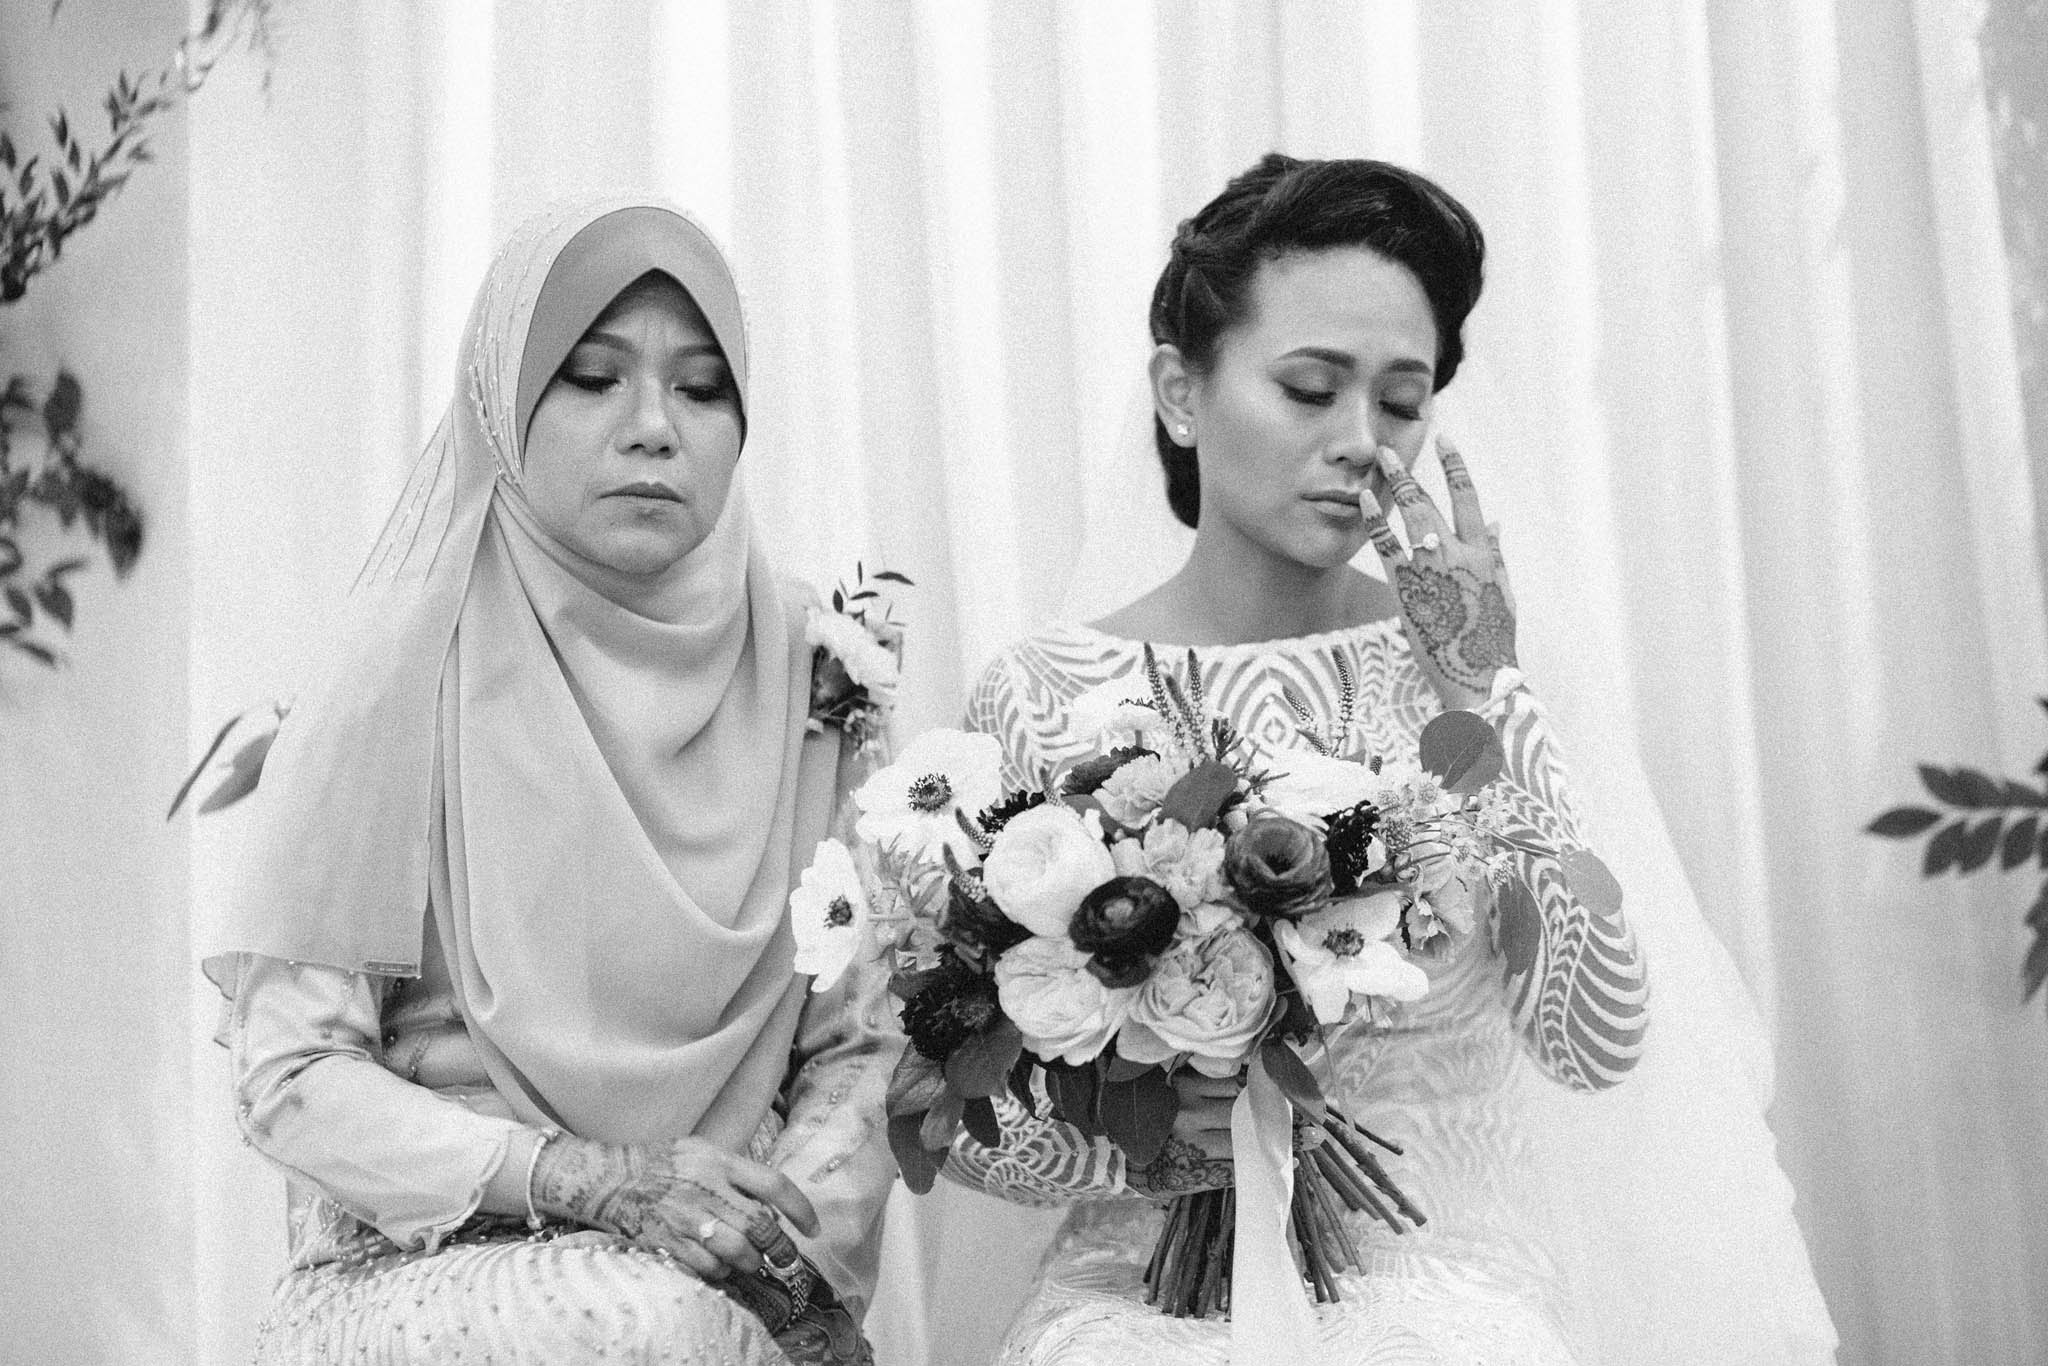 singapore-wedding-photographer-wedding-hafiana-teck-kuan-047.jpg